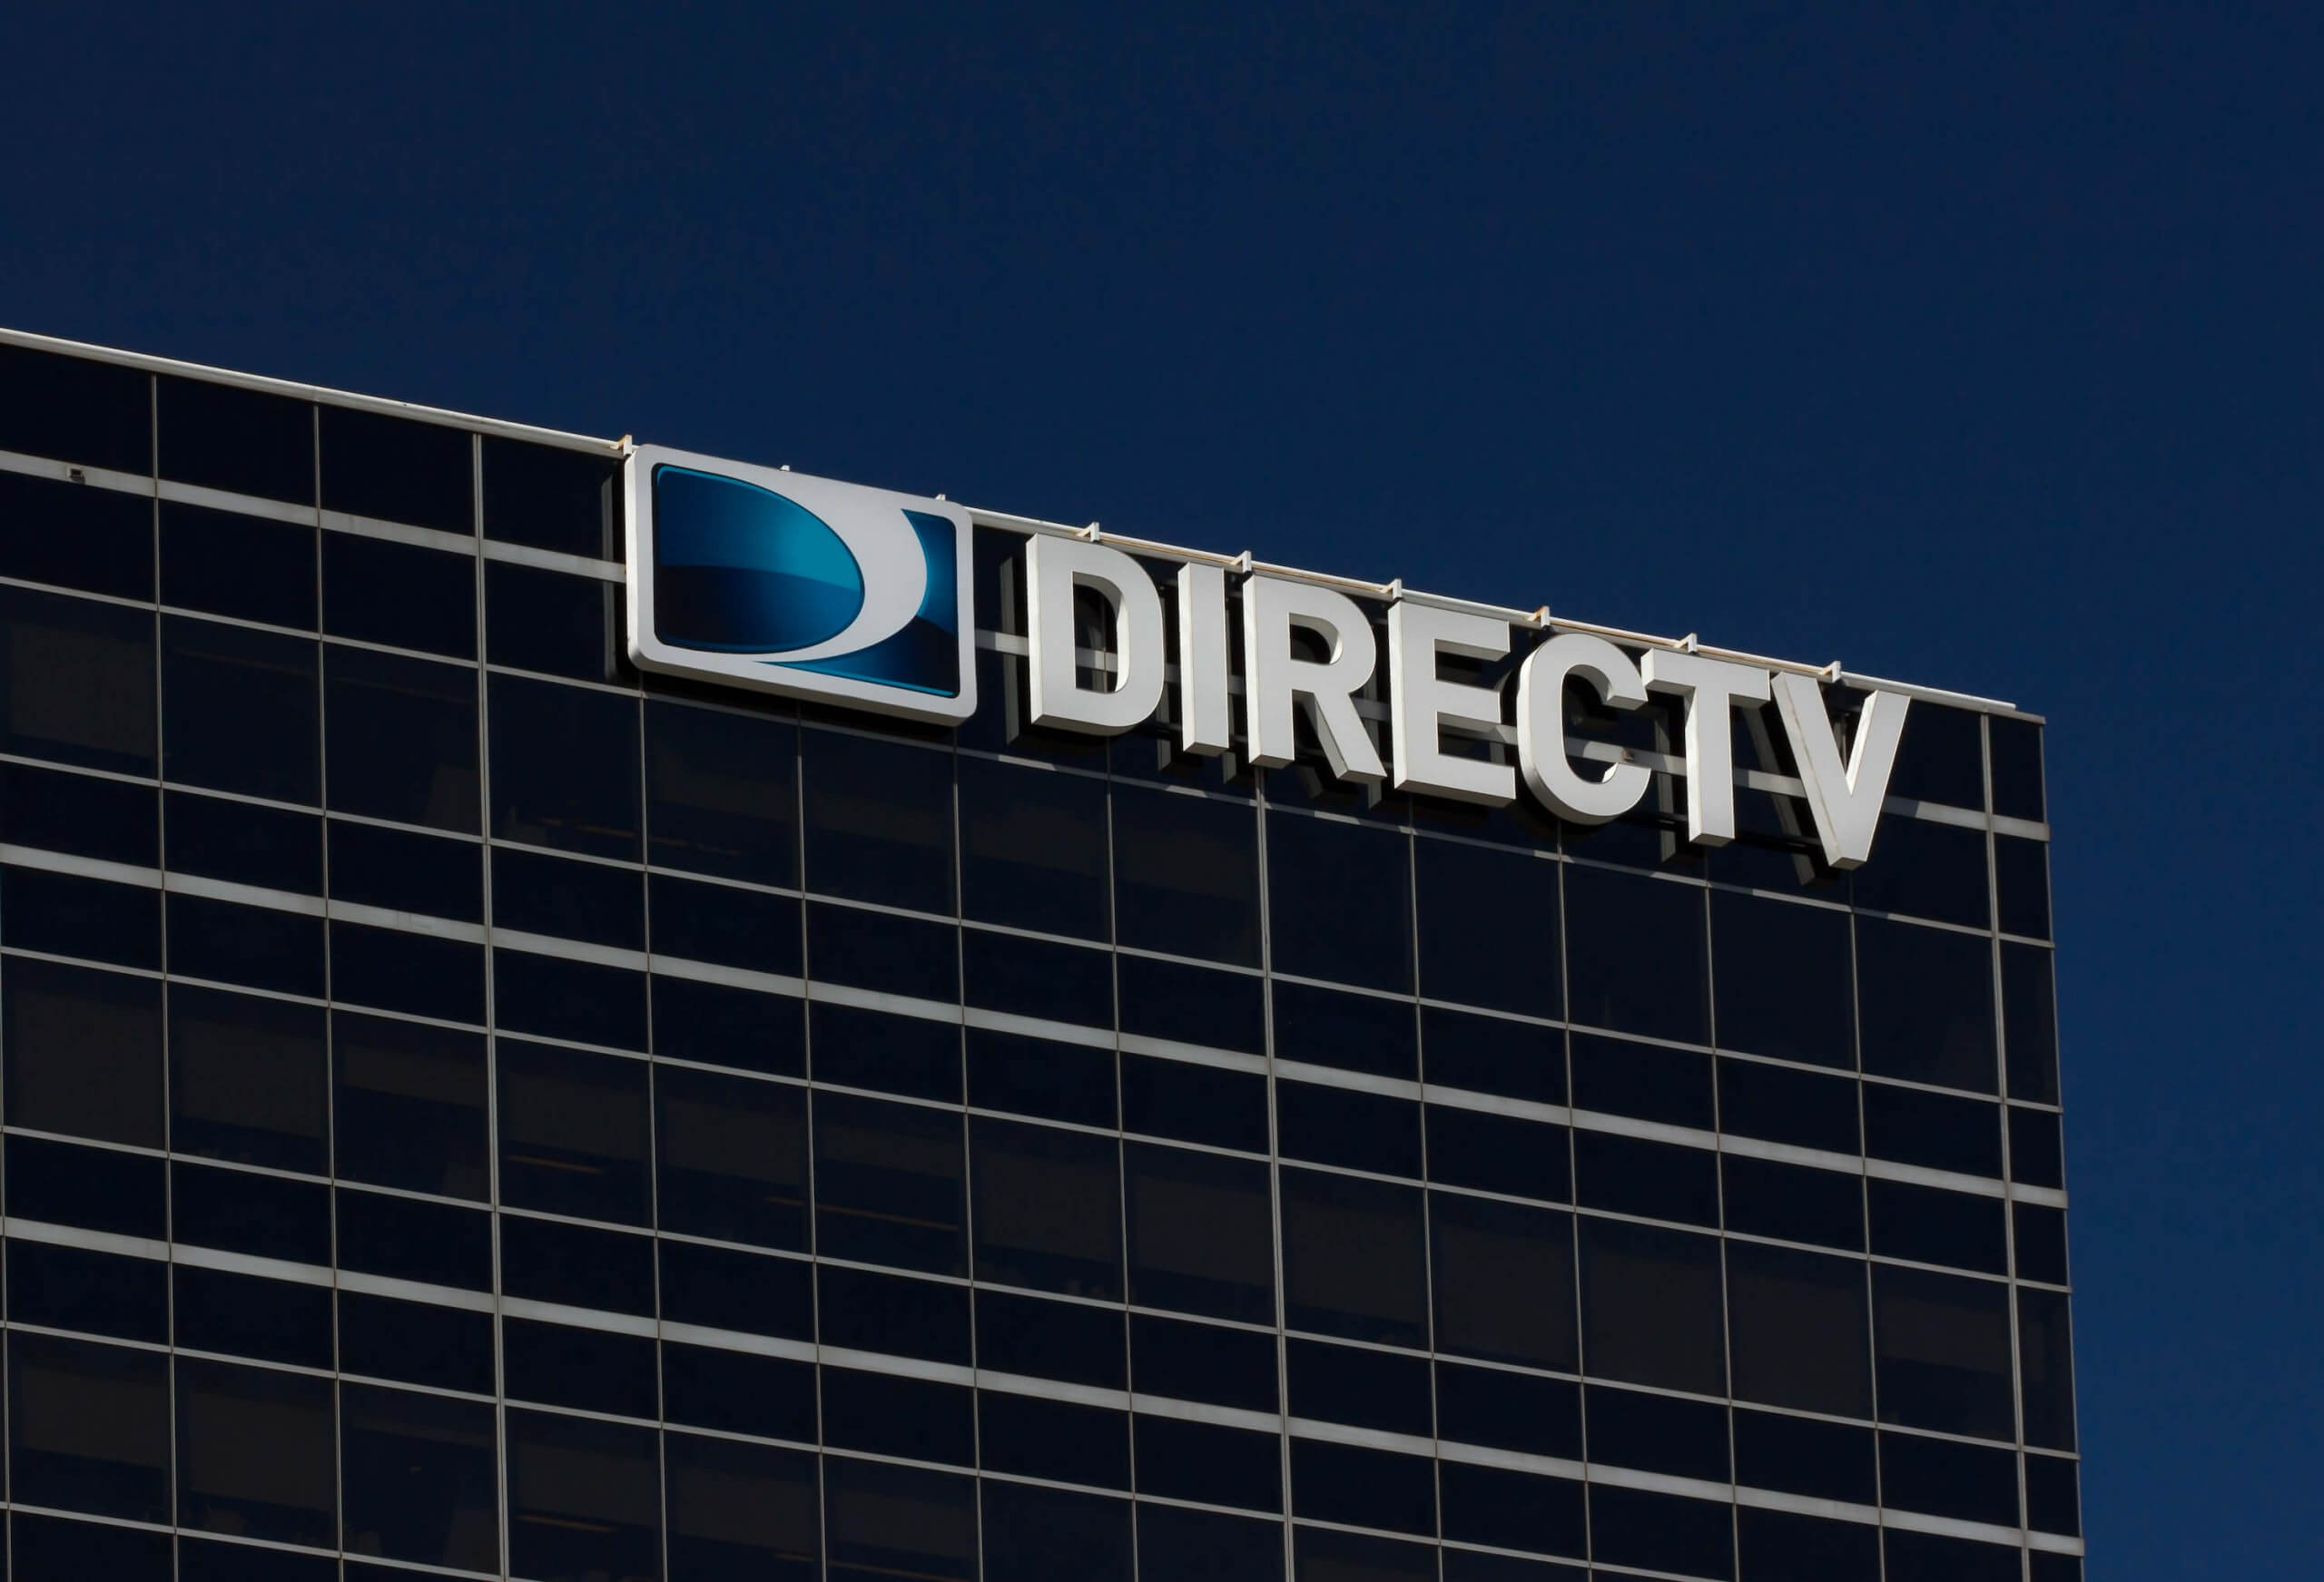 With subscribers dwindling, AT&T considers ways to ditch DirecTV